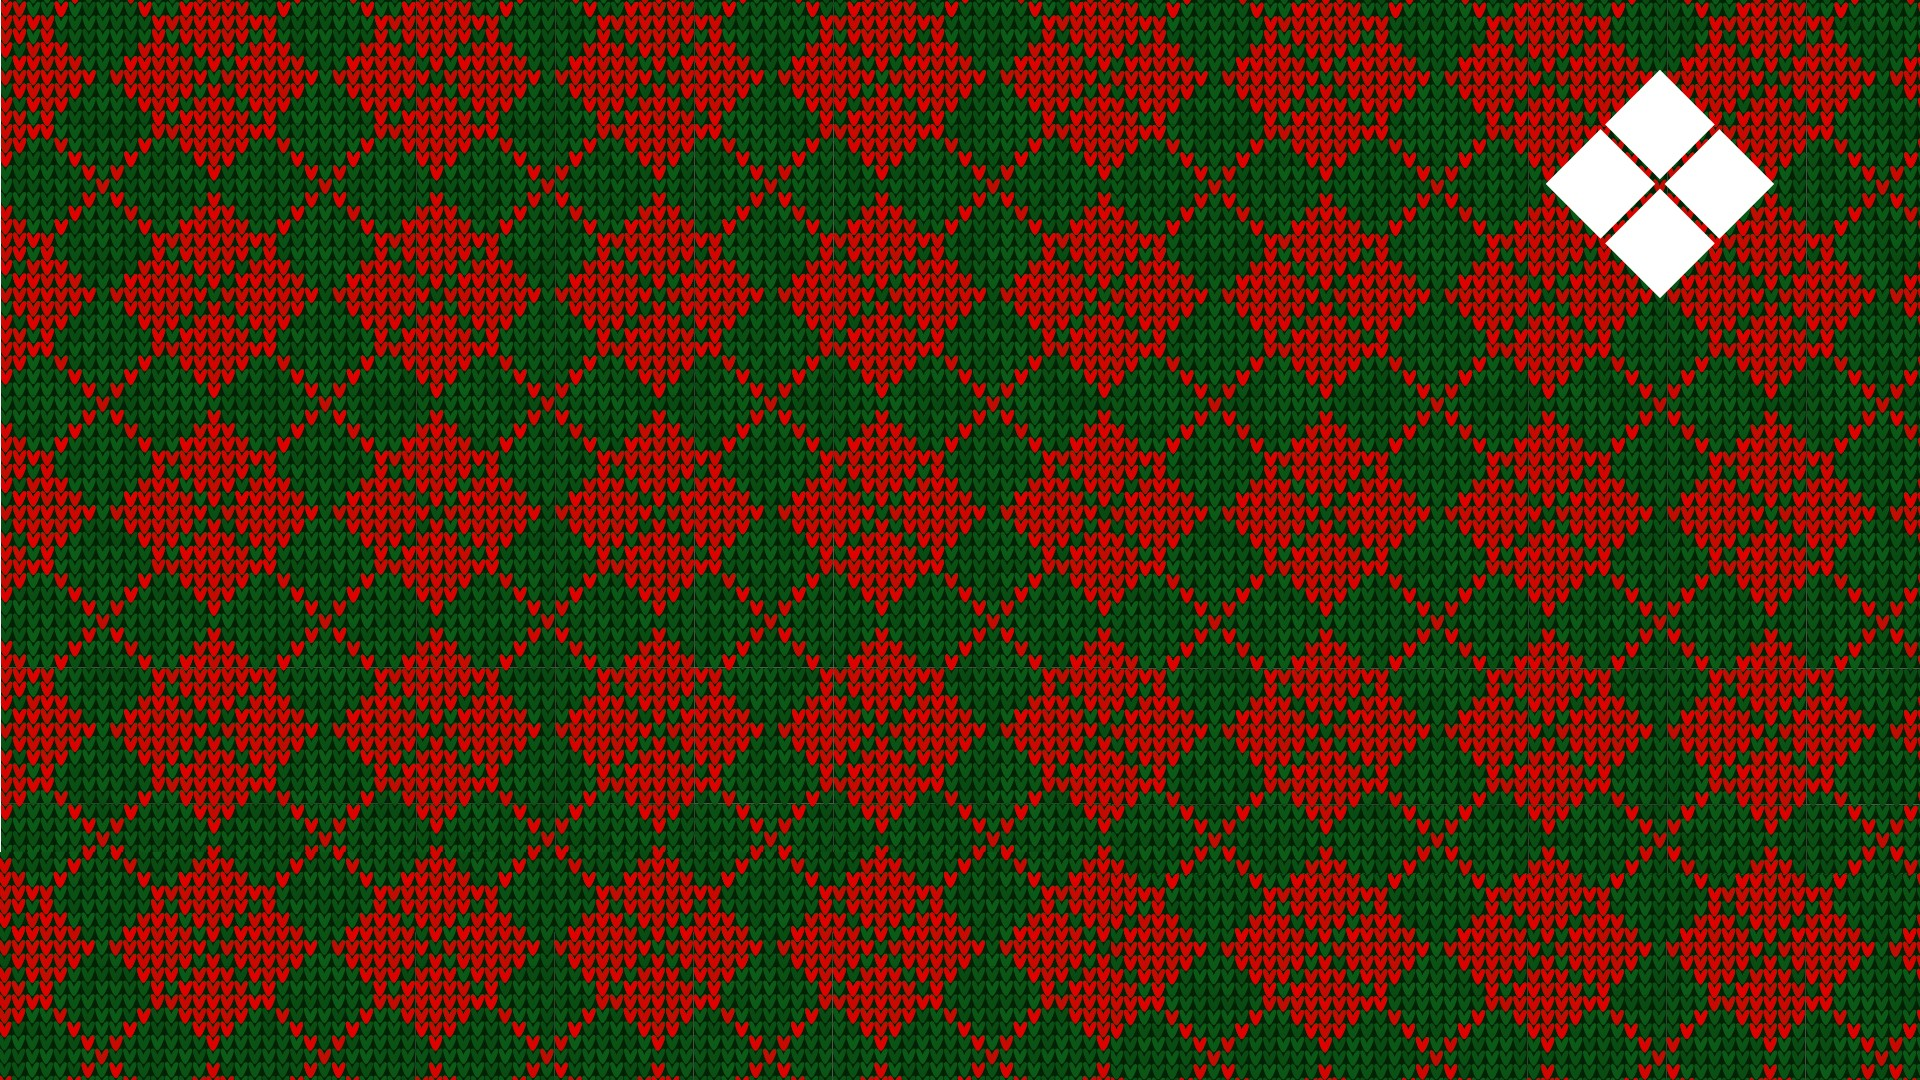 A red and green diamond sweater texture with the Delaware Tech logo at the top right